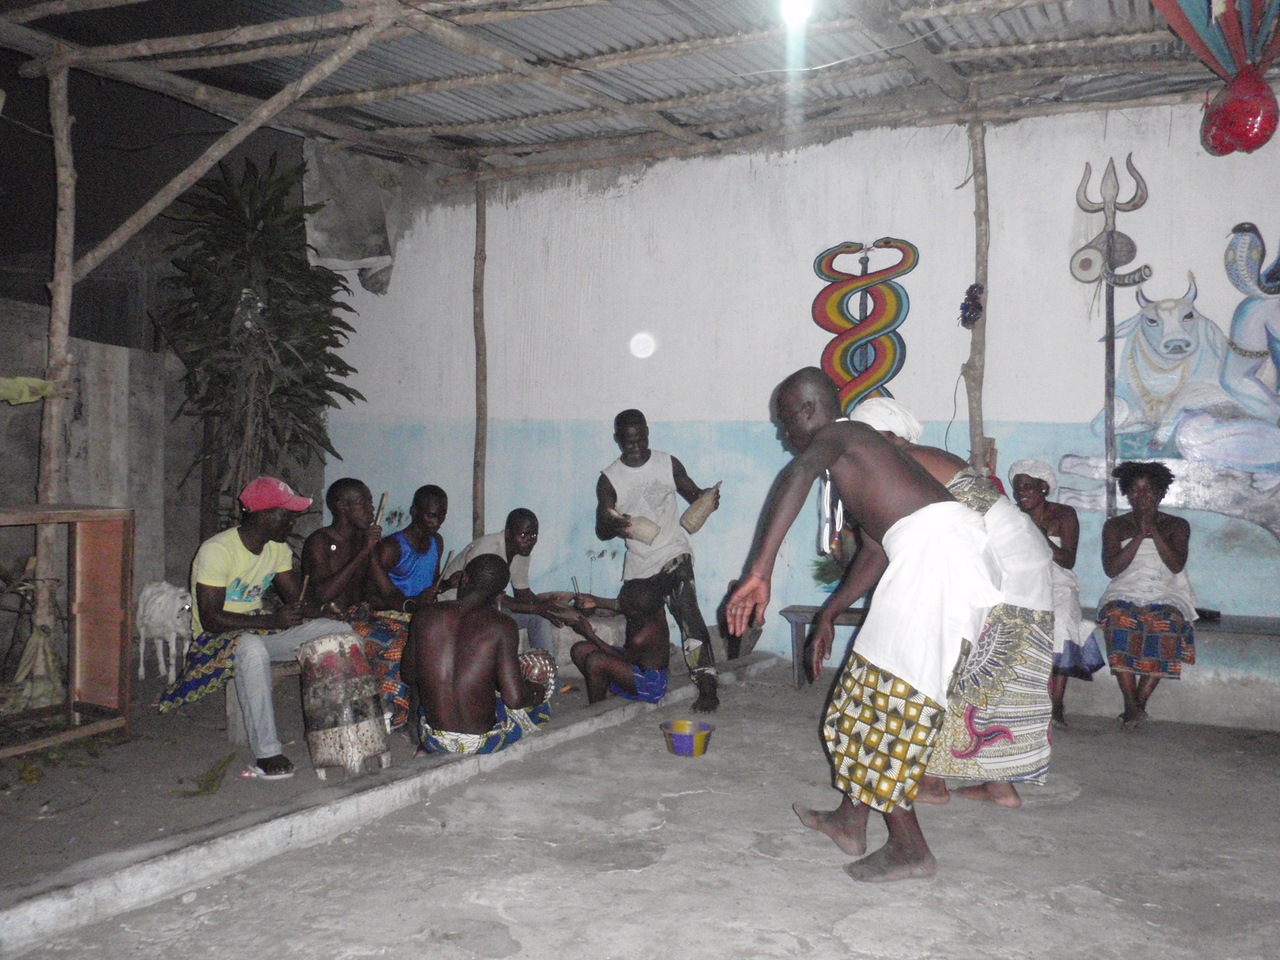 143_Cotonou  Voodoo Ceremony  Percussions, Chants, Devotion